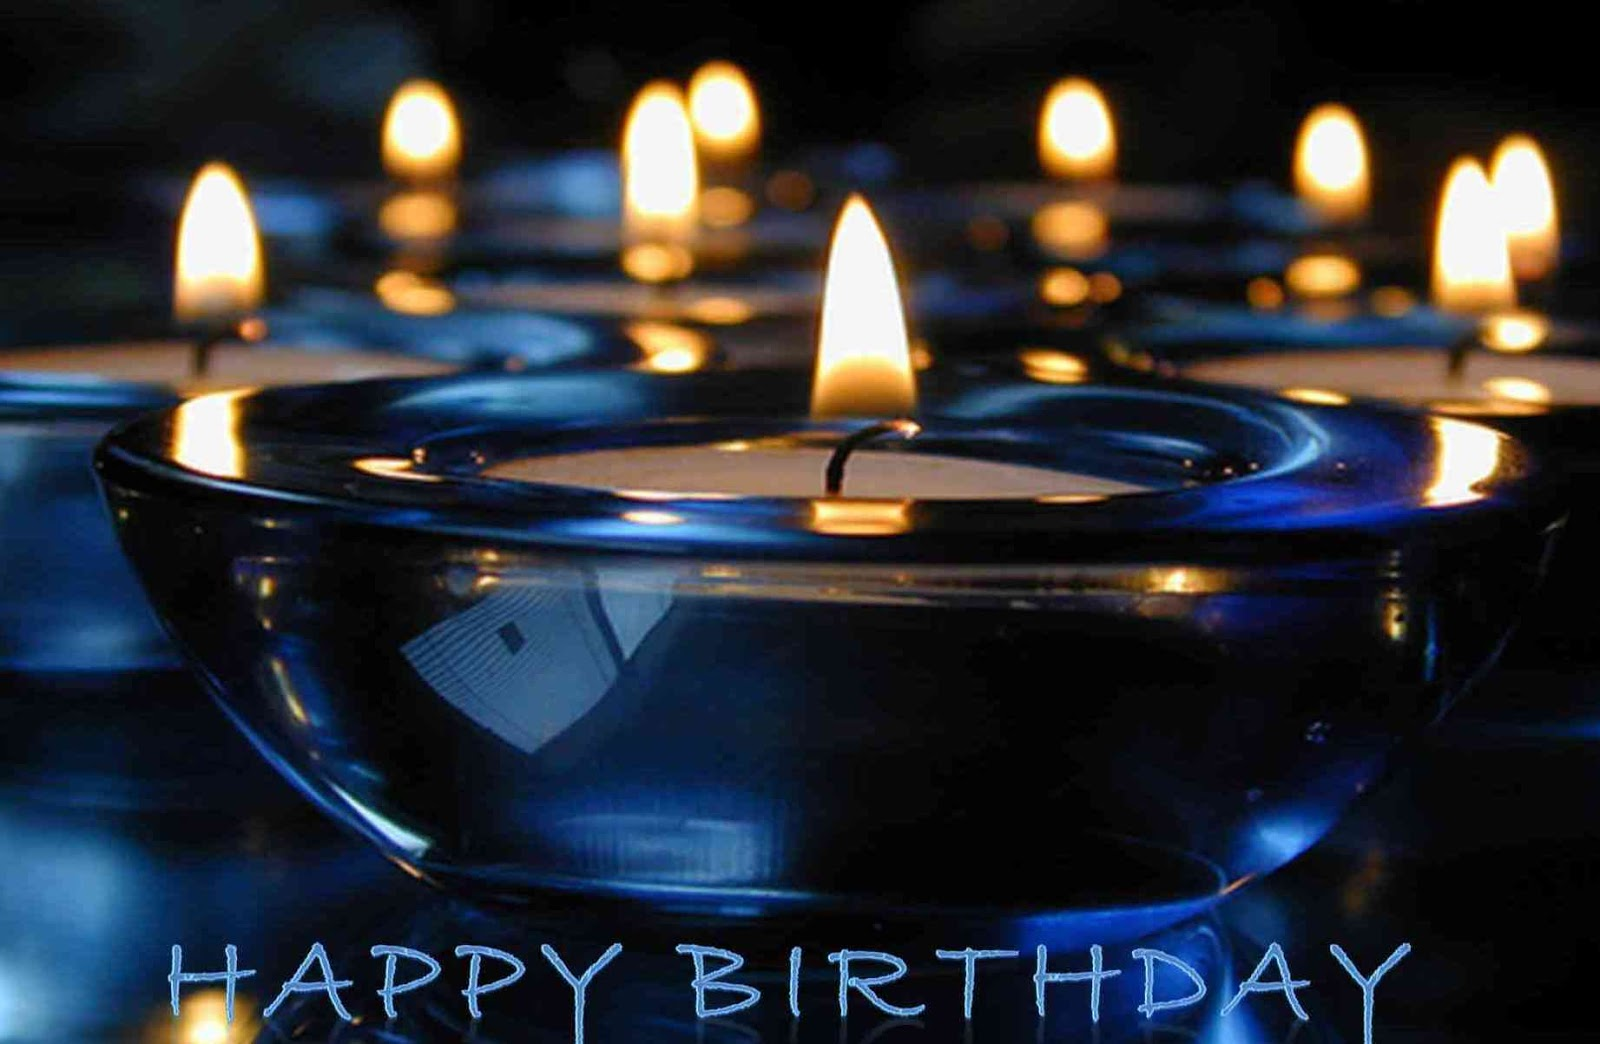 Birthday Wishes For Best Friend Images In Hd ~ Best happy birthday wishes hd images cake pics